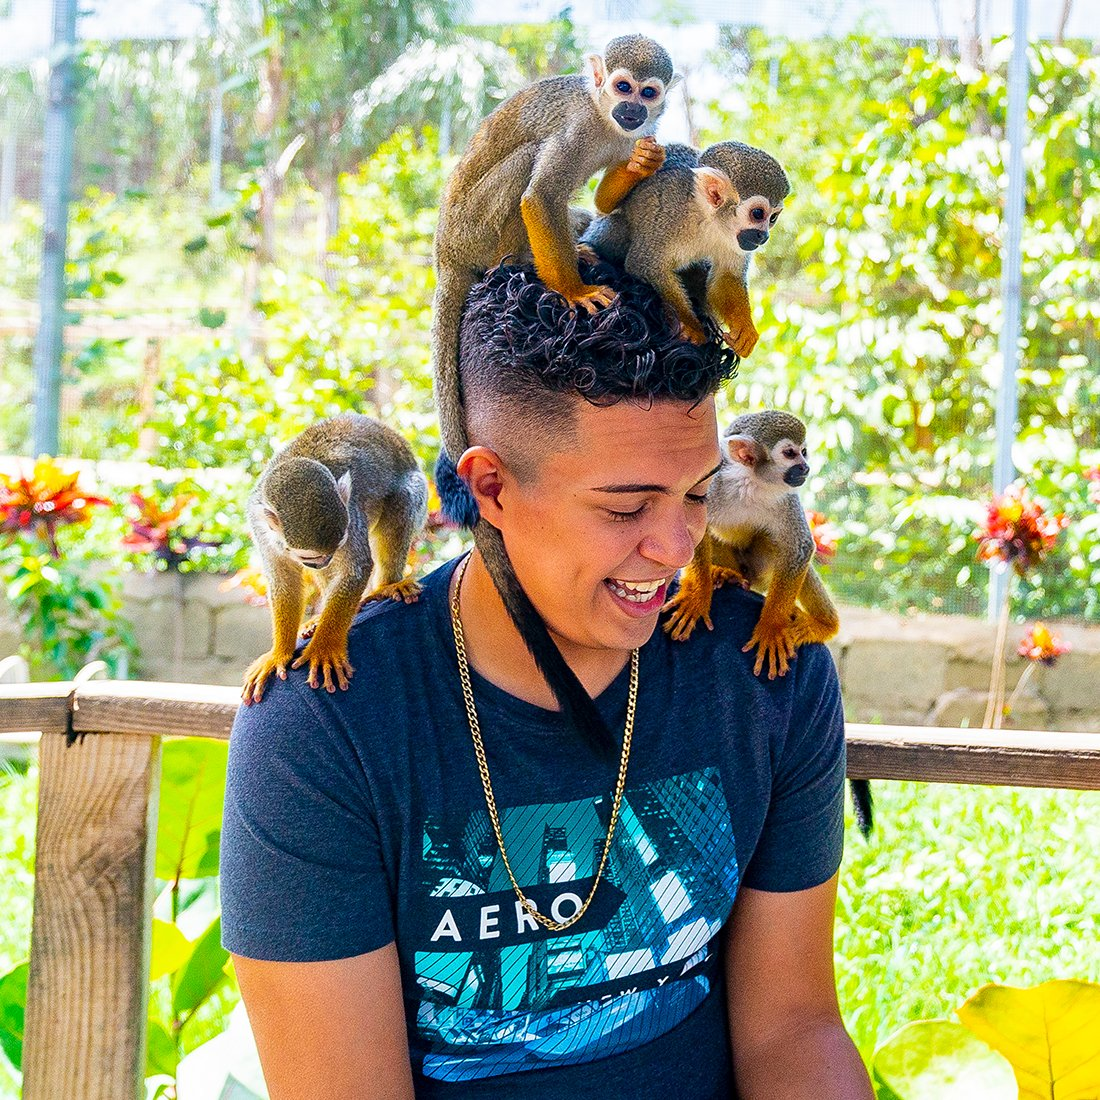 Interacting with monkeys at monkey jungle